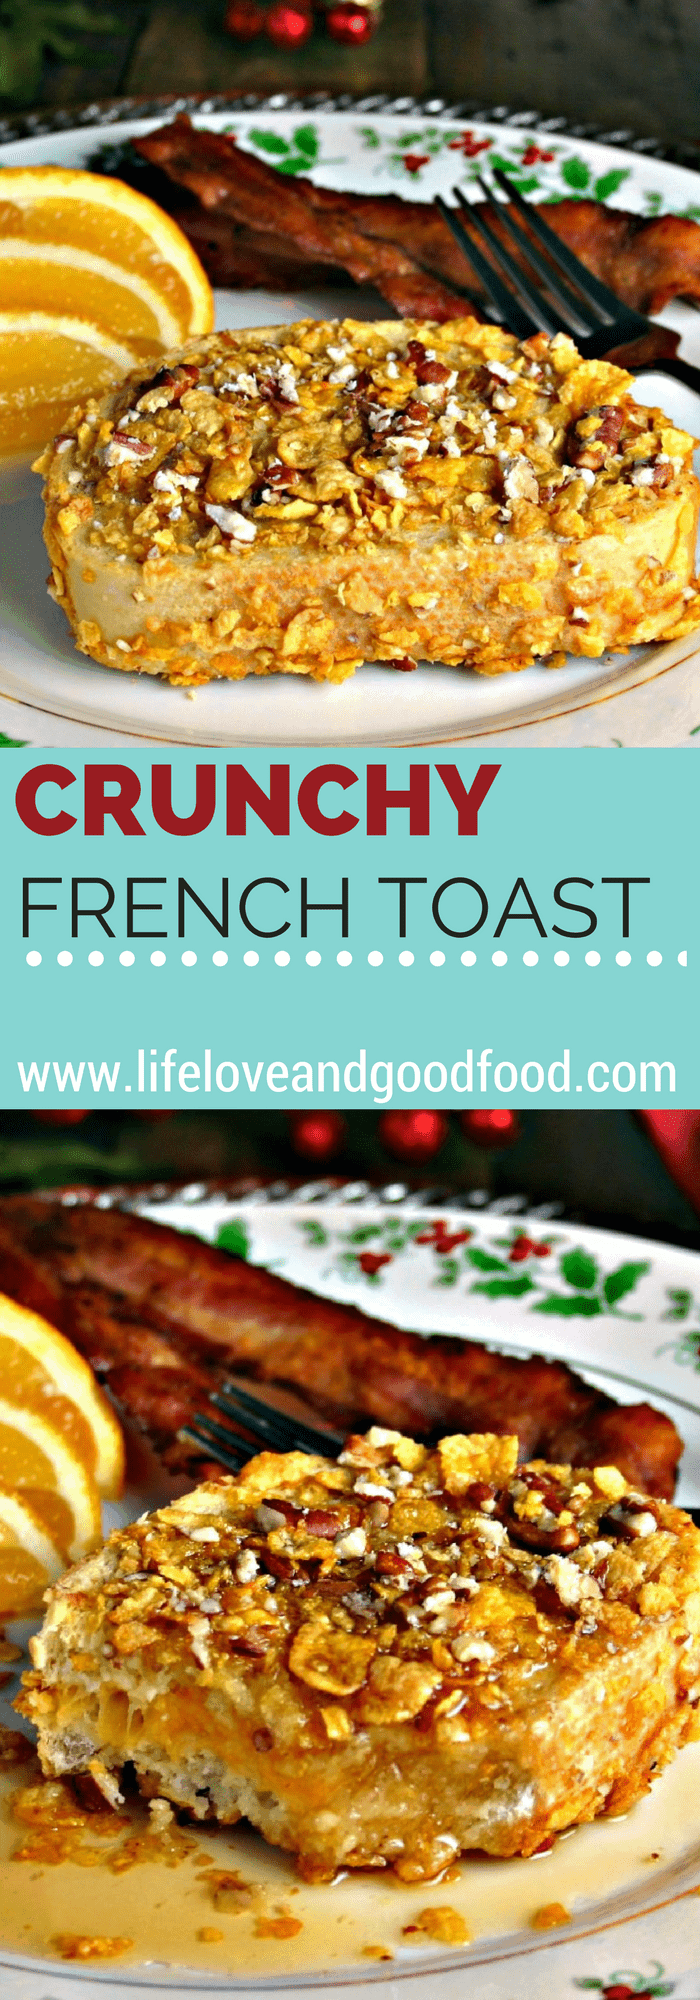 Crunchy French Toast - Life, Love, and Good Food